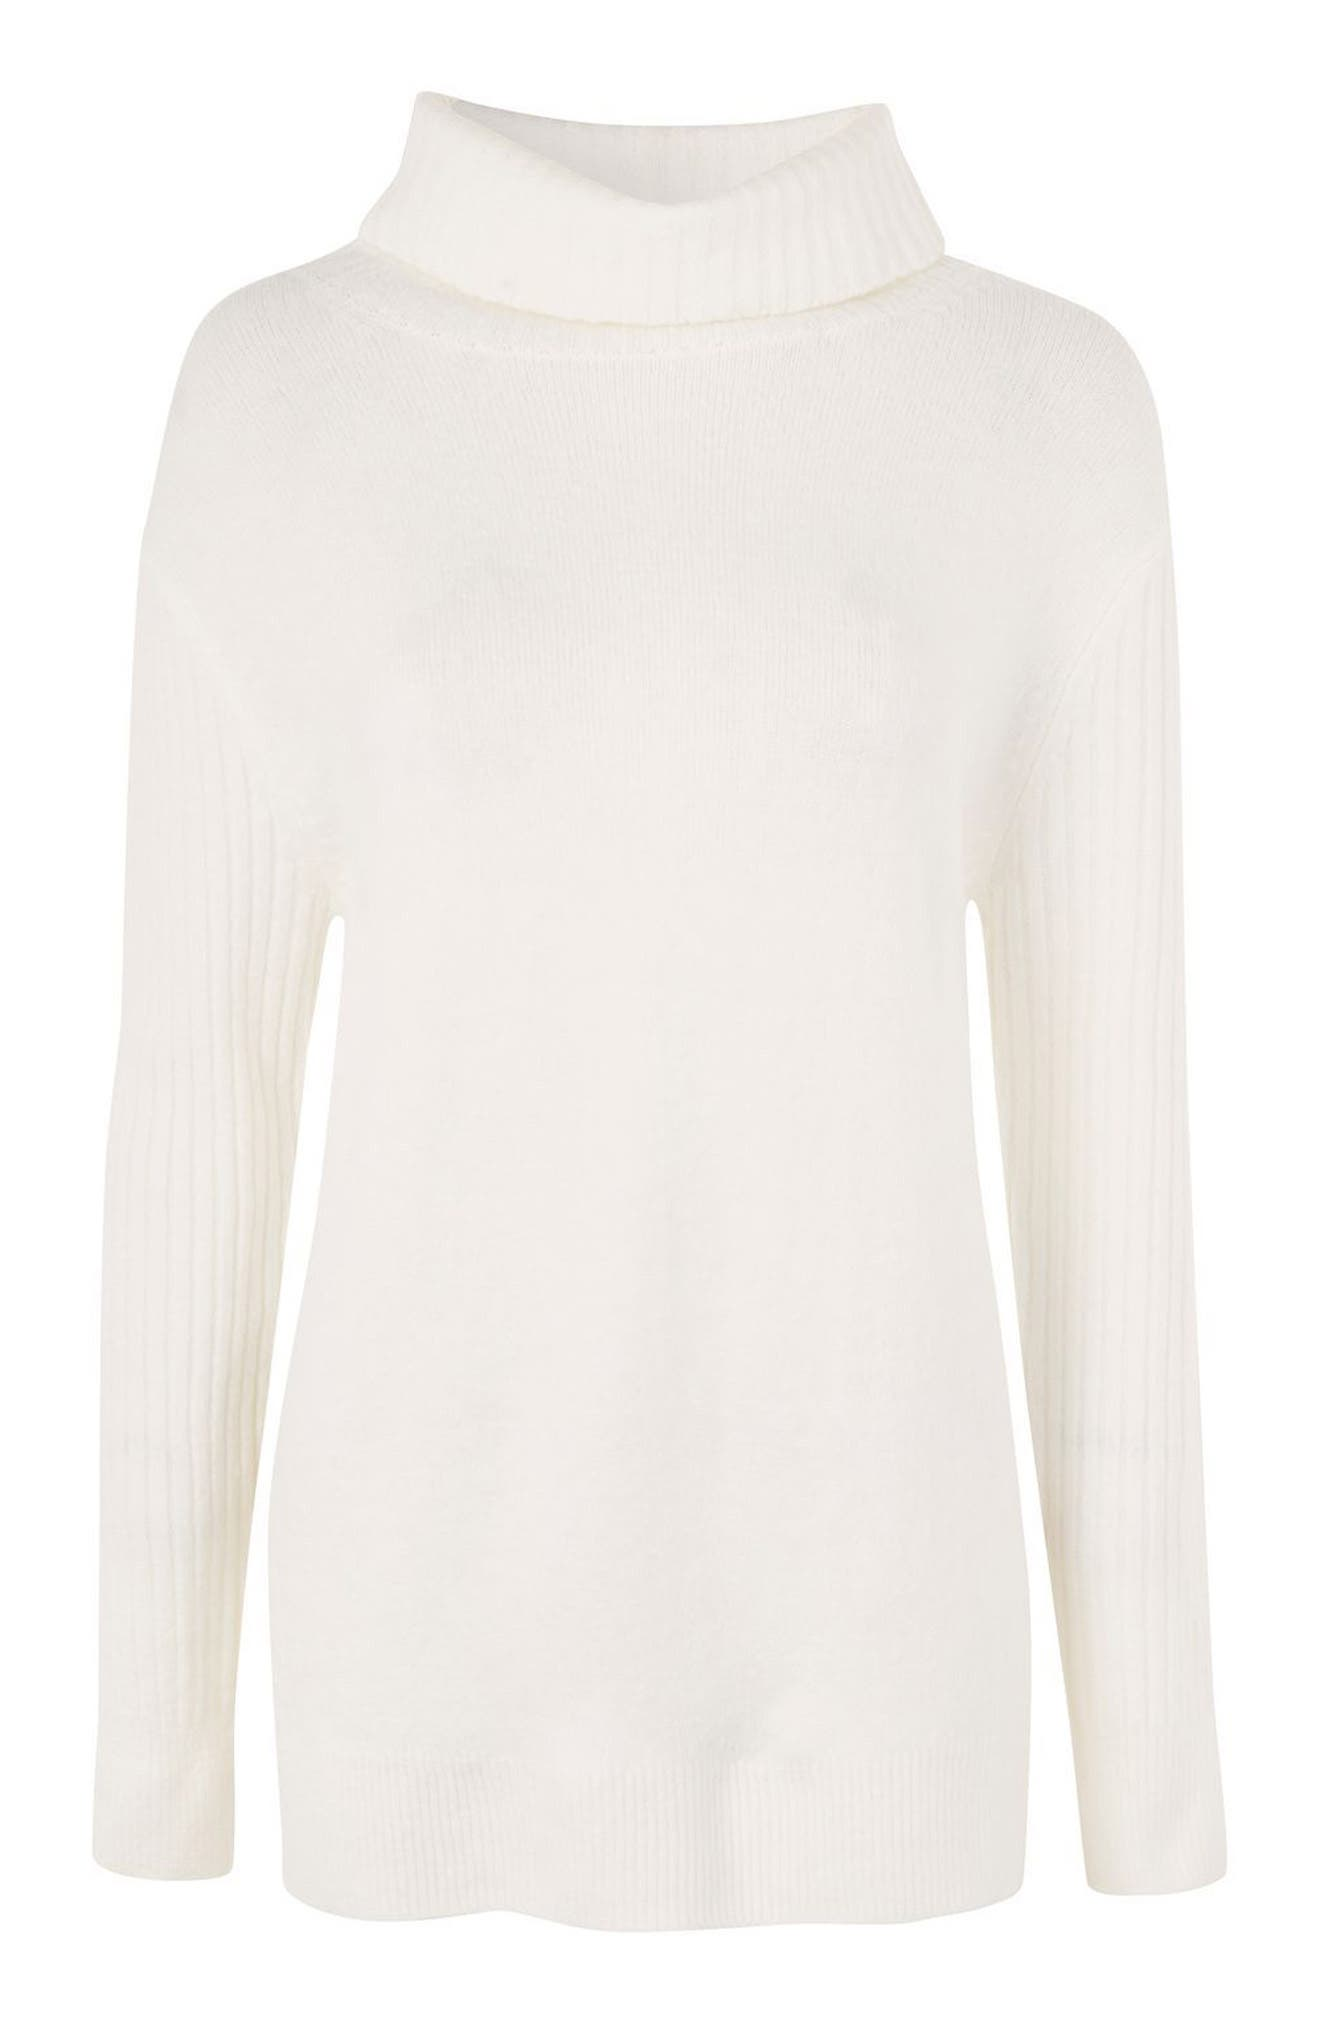 Oversize Turtleneck Sweater,                             Alternate thumbnail 4, color,                             Ivory